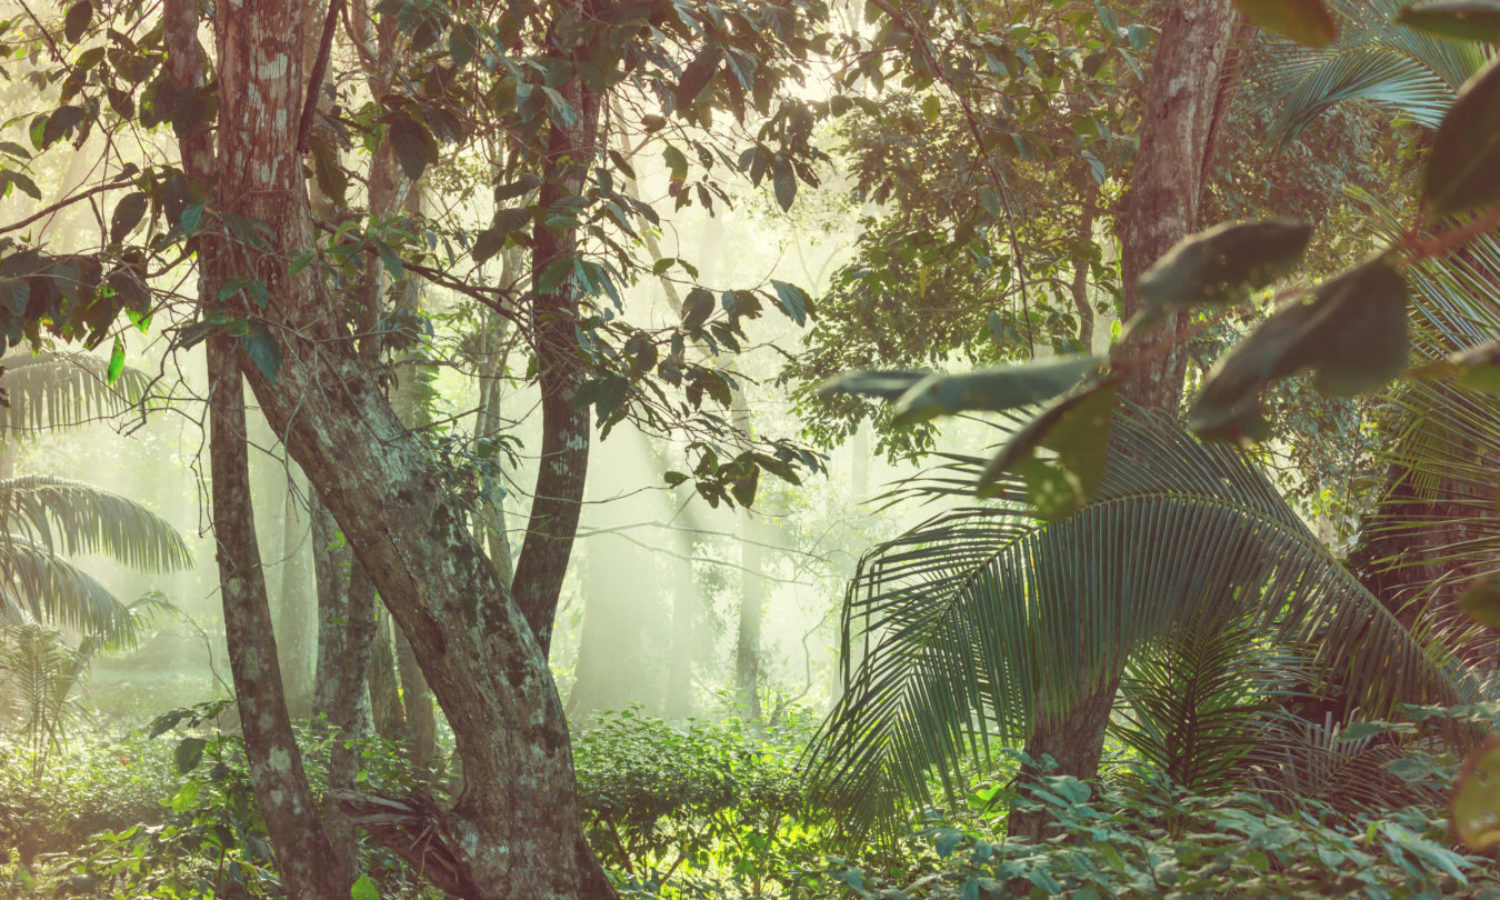 Jungle in Costa Rica